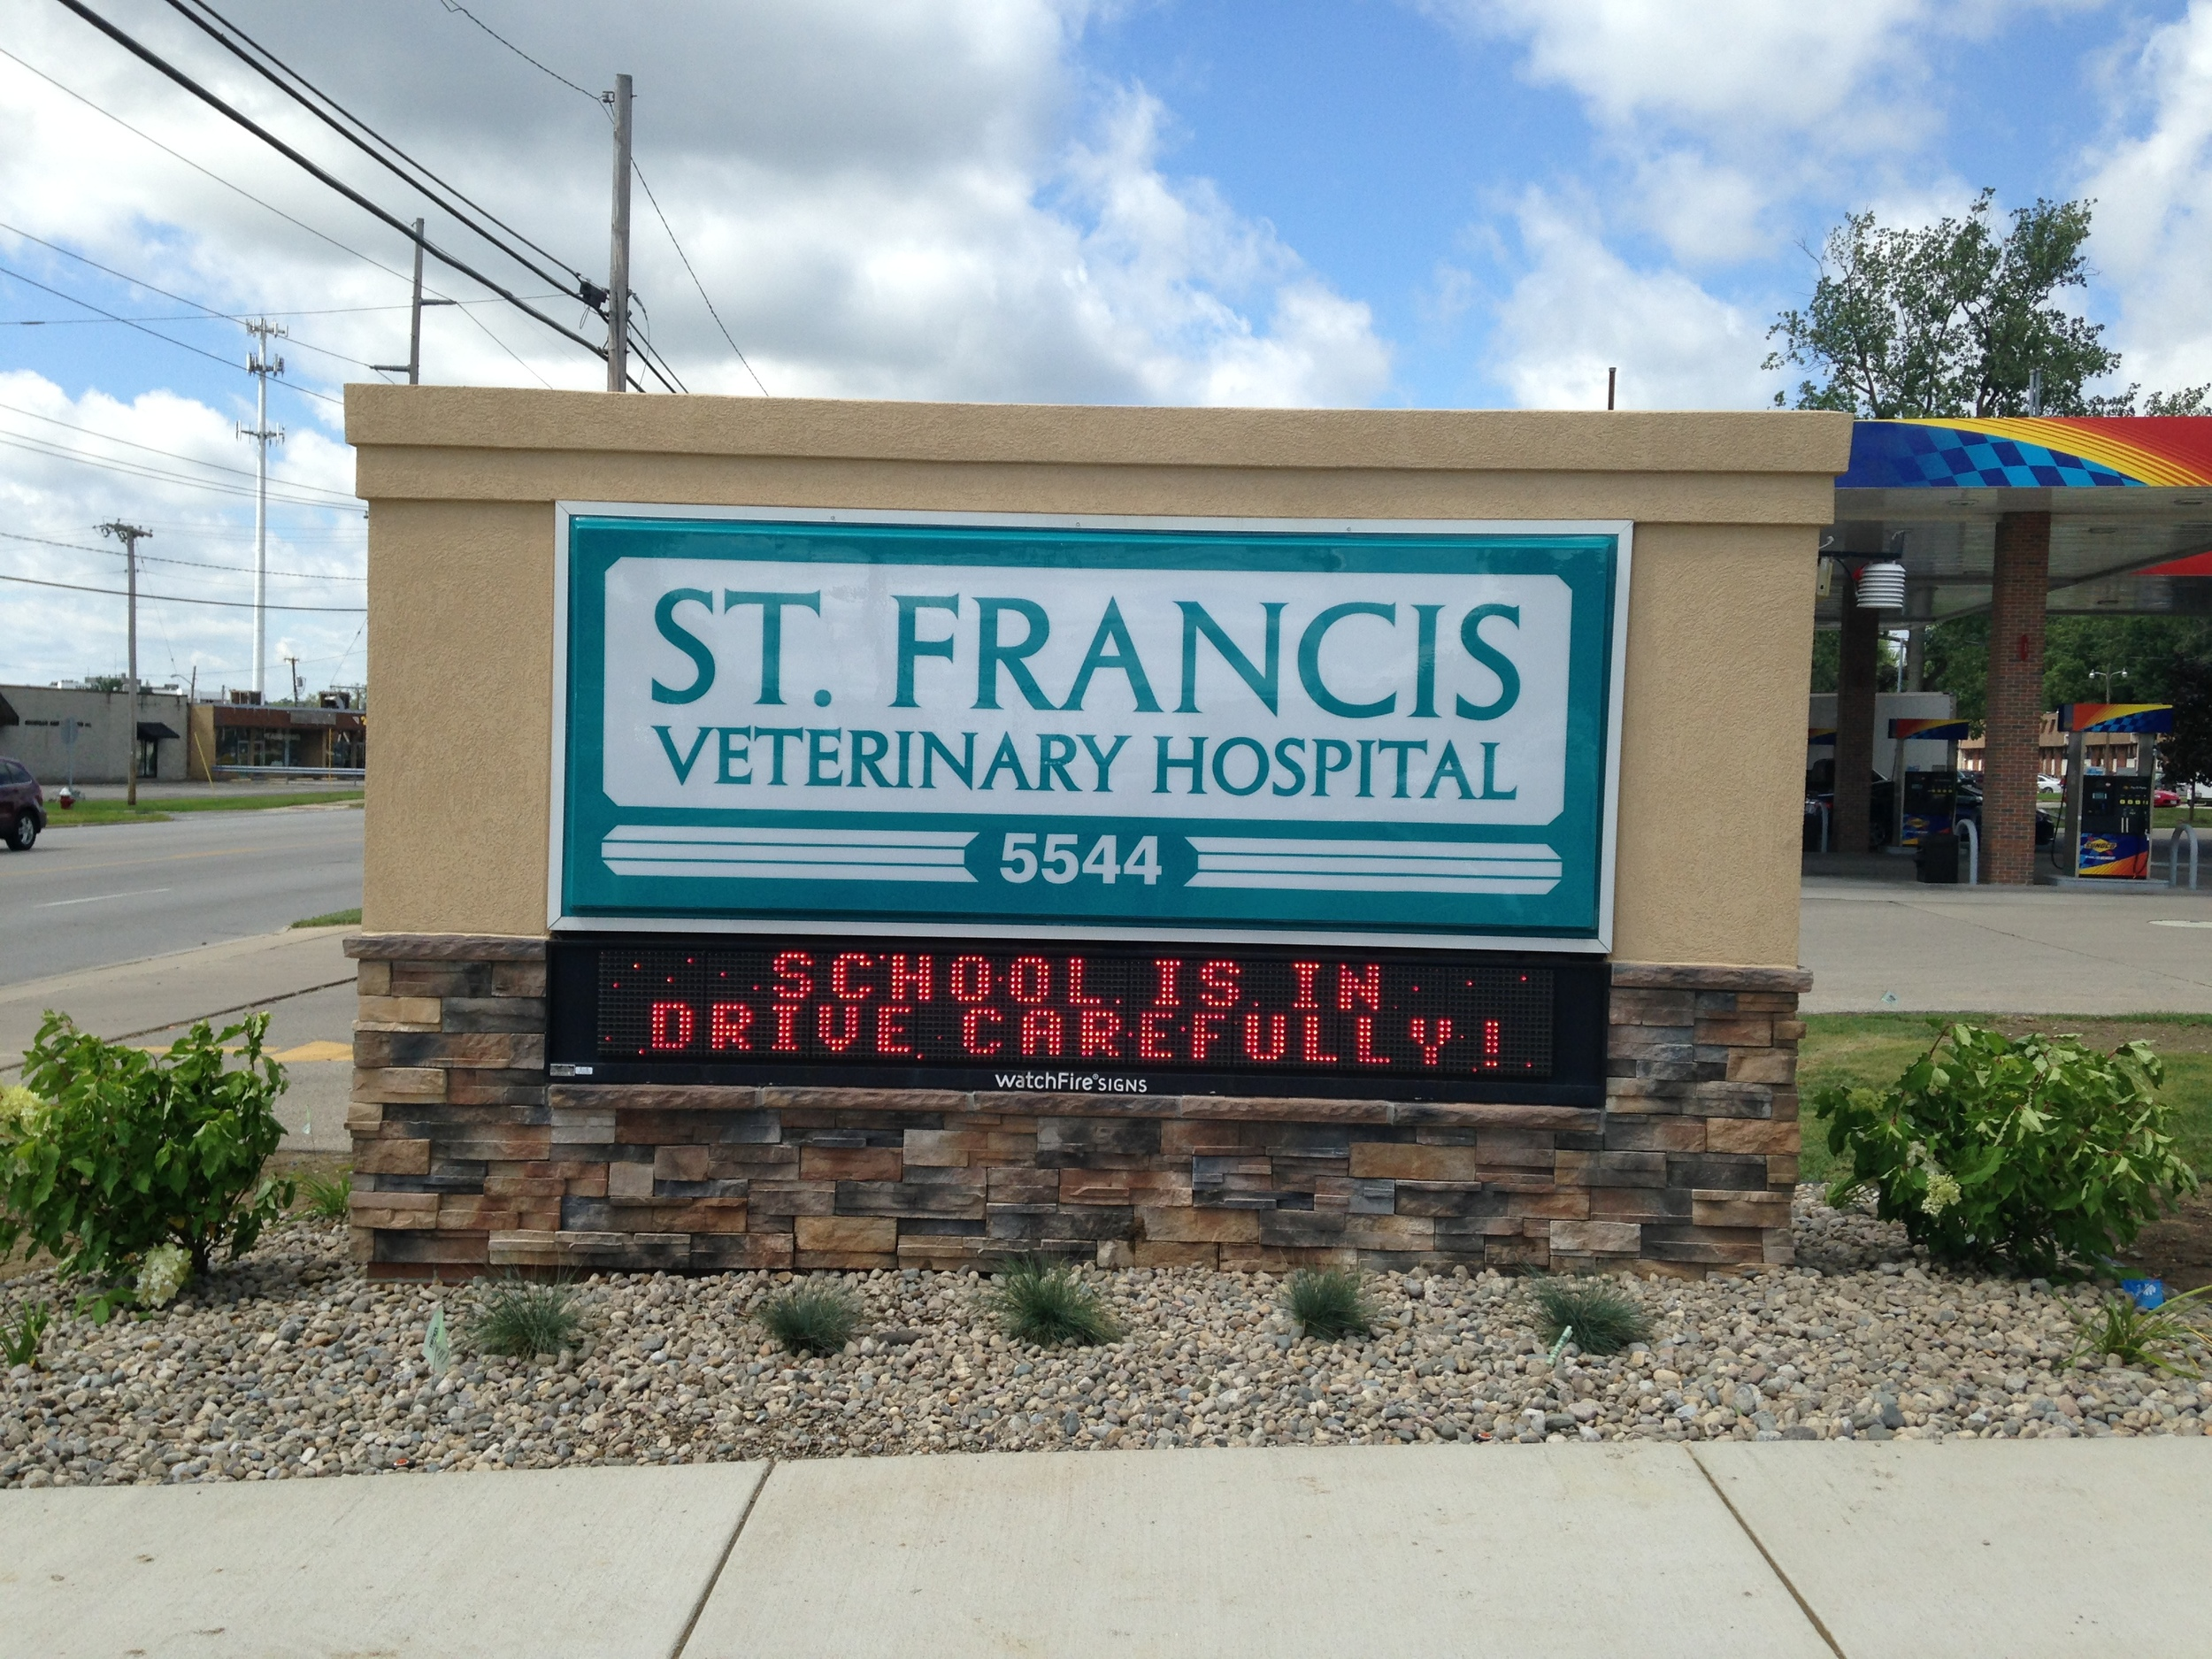 St. Francis Veterinary Hospital